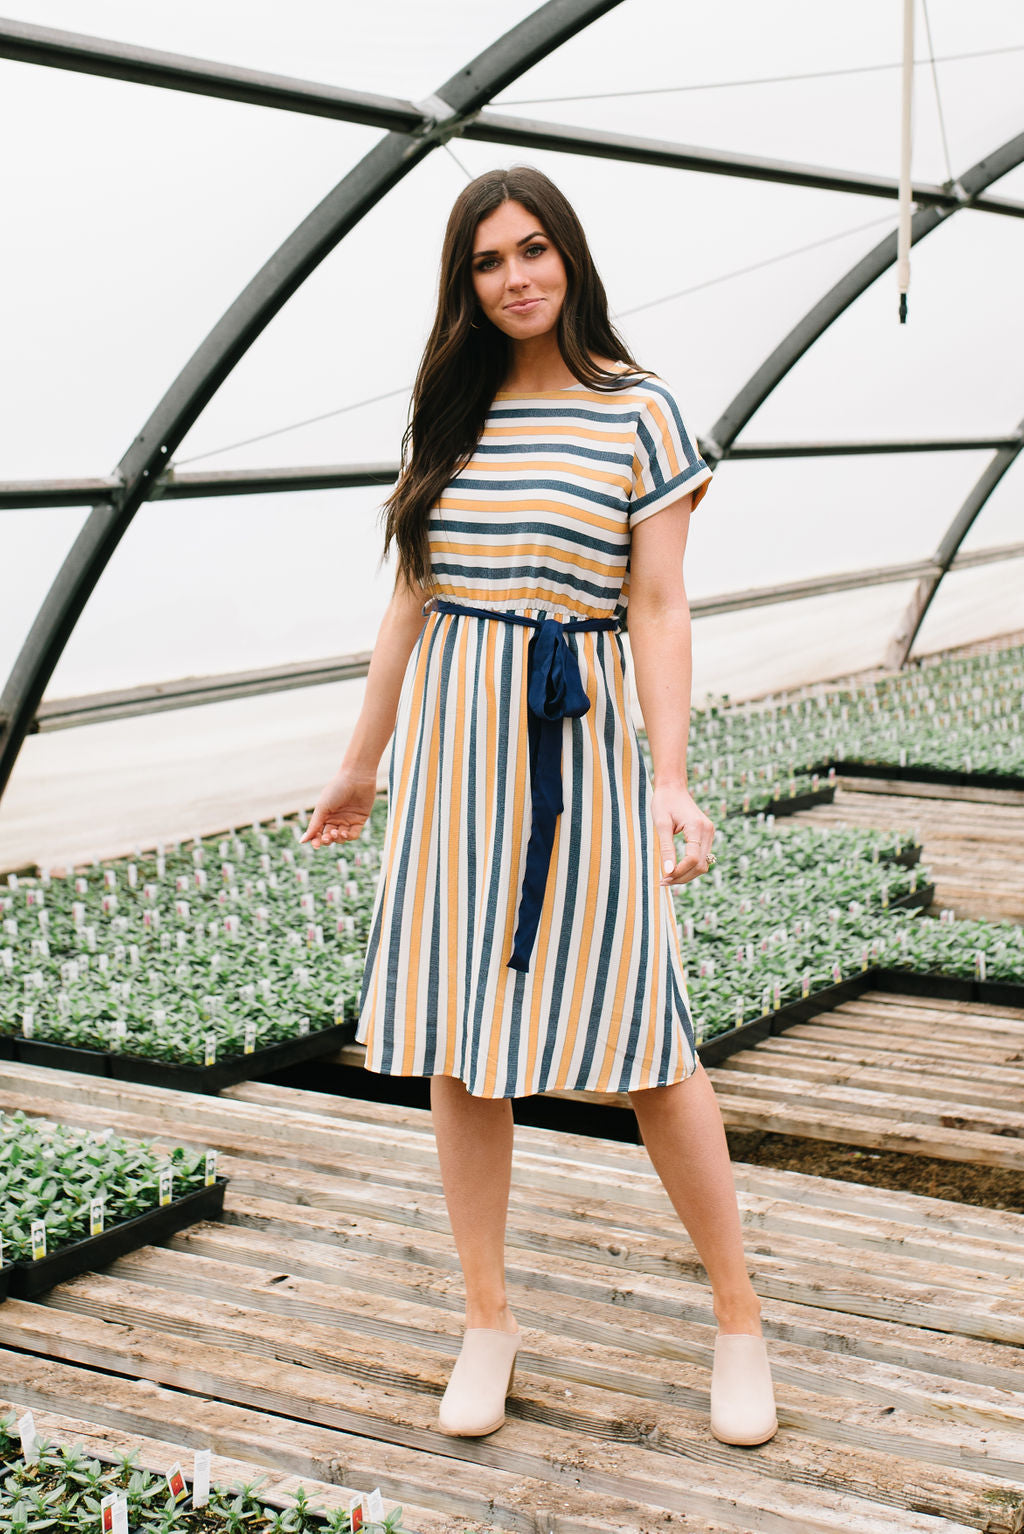 LAYLA MIDI DRESS IN NAVY BLUE AND MUSTARD YELLOW STRIPES